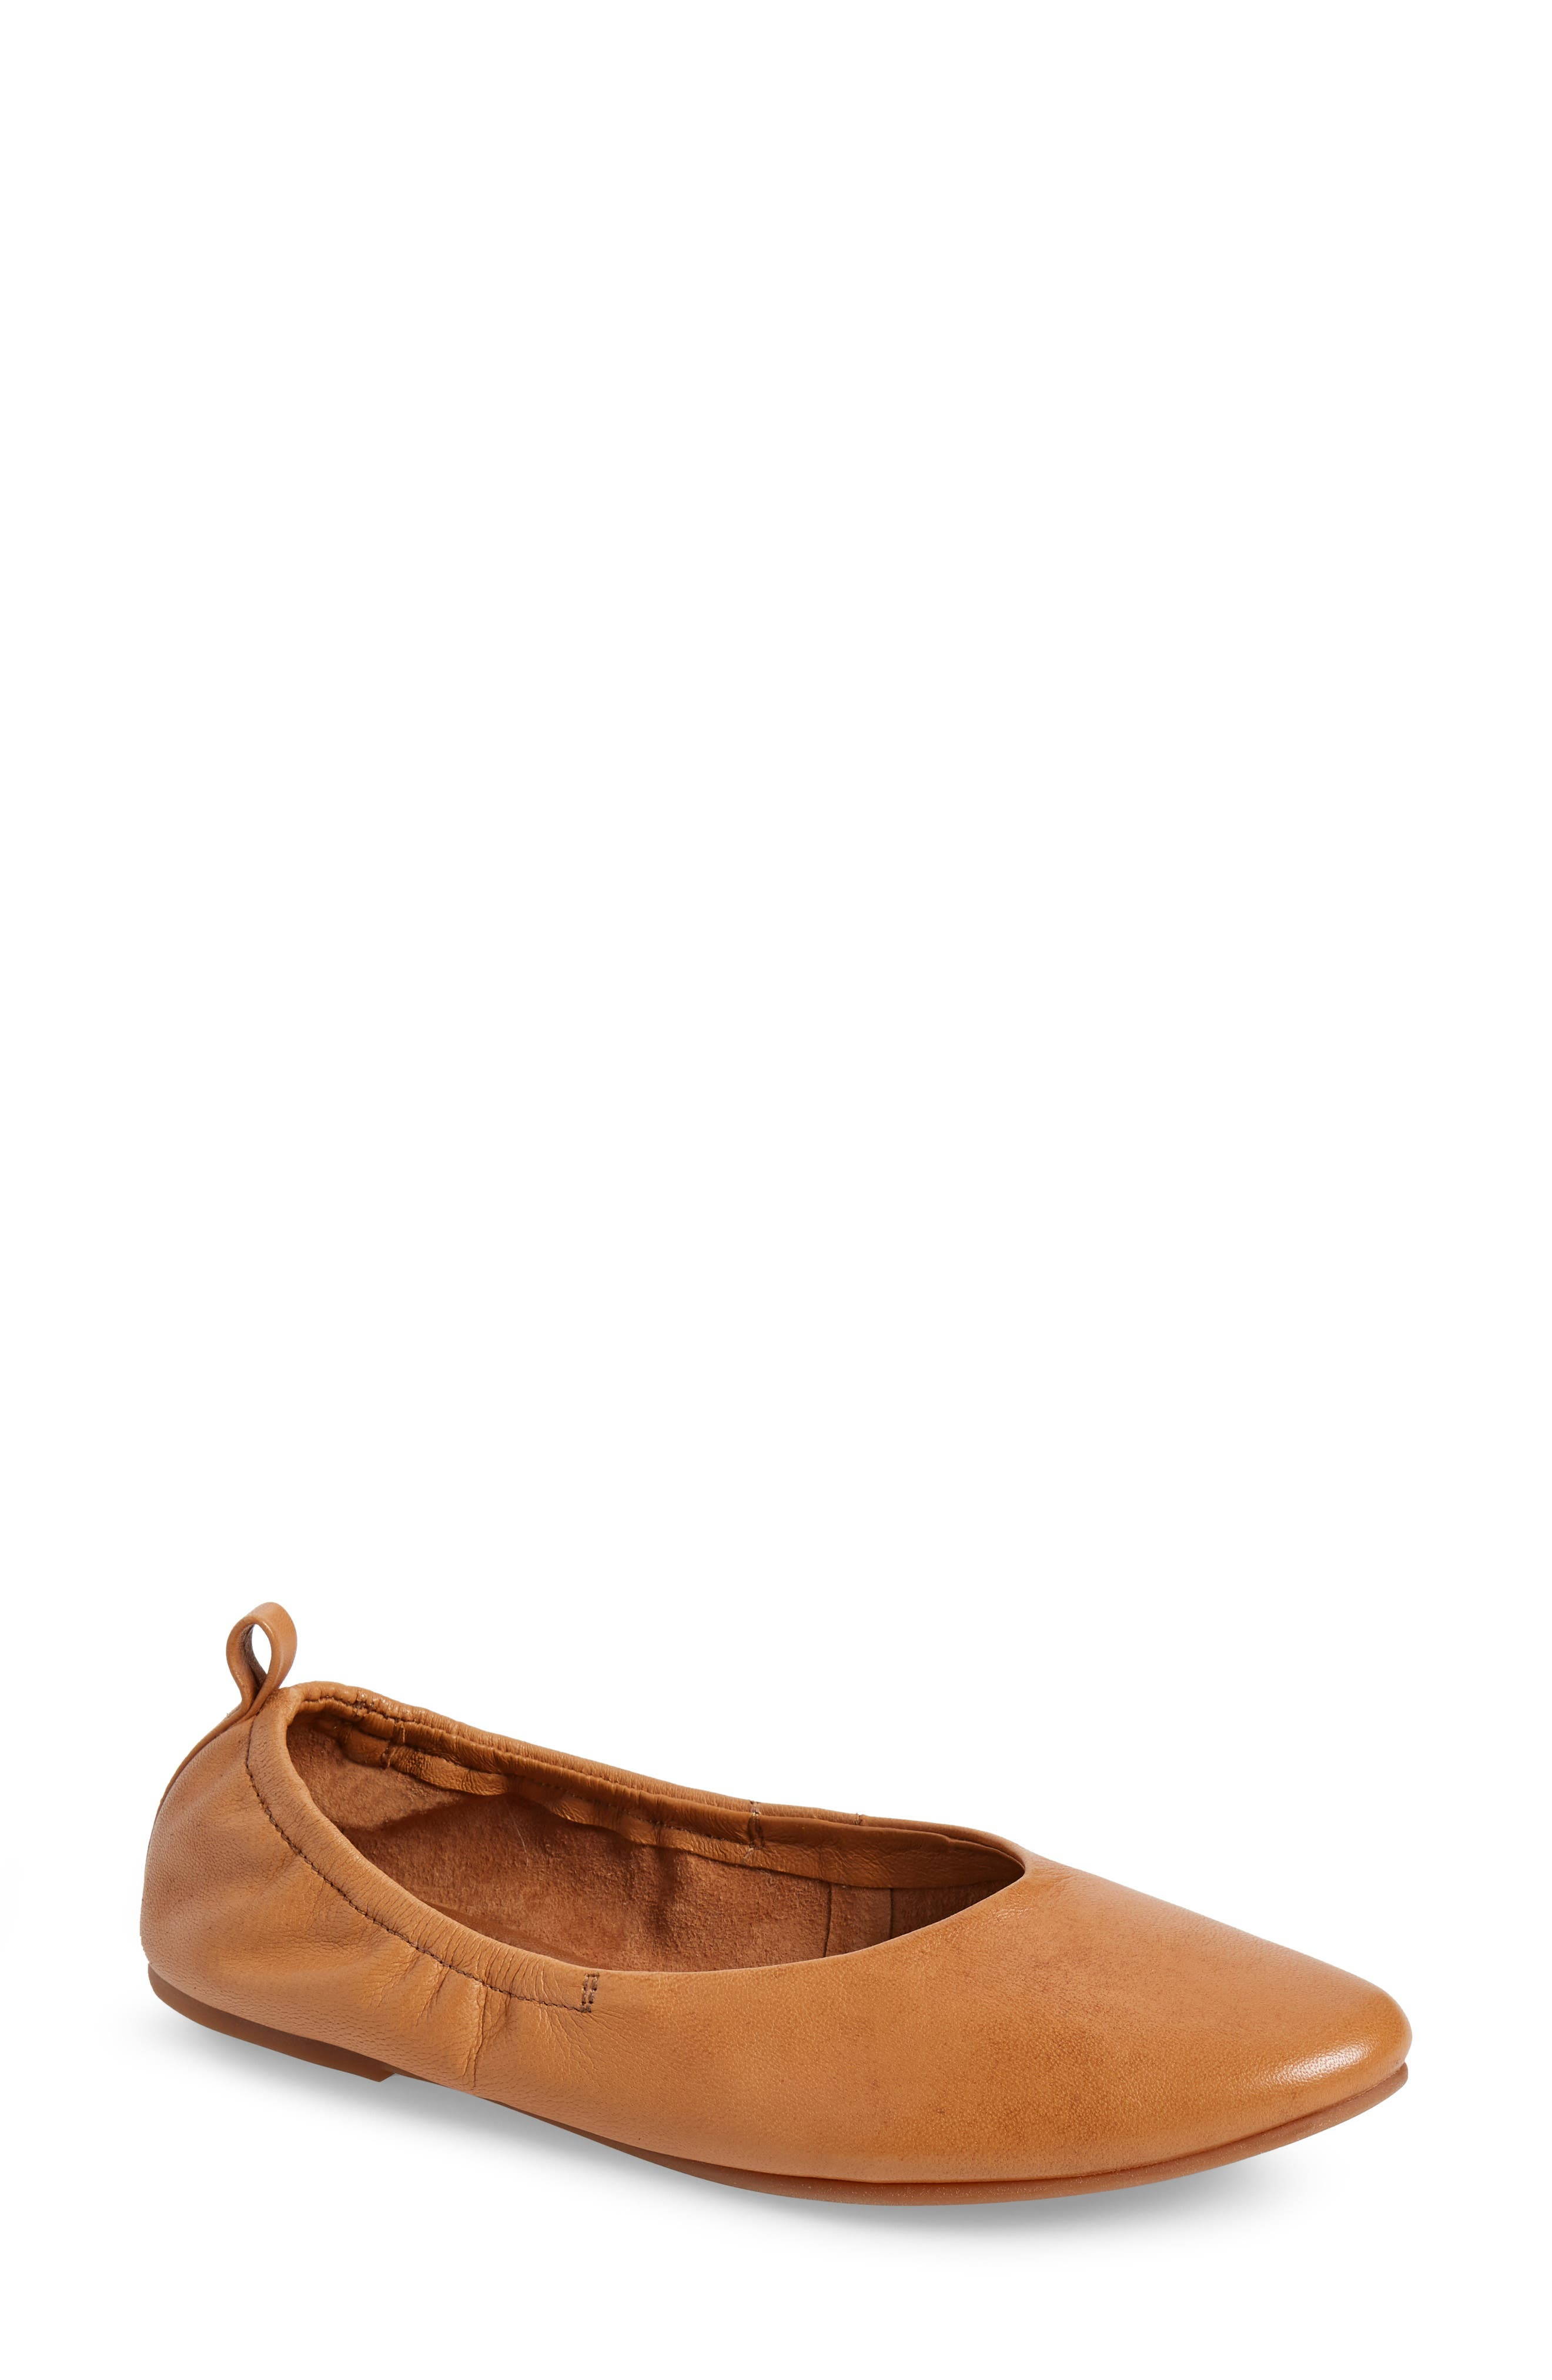 Inner Peace Flat,                         Main,                         color, Tan Leather